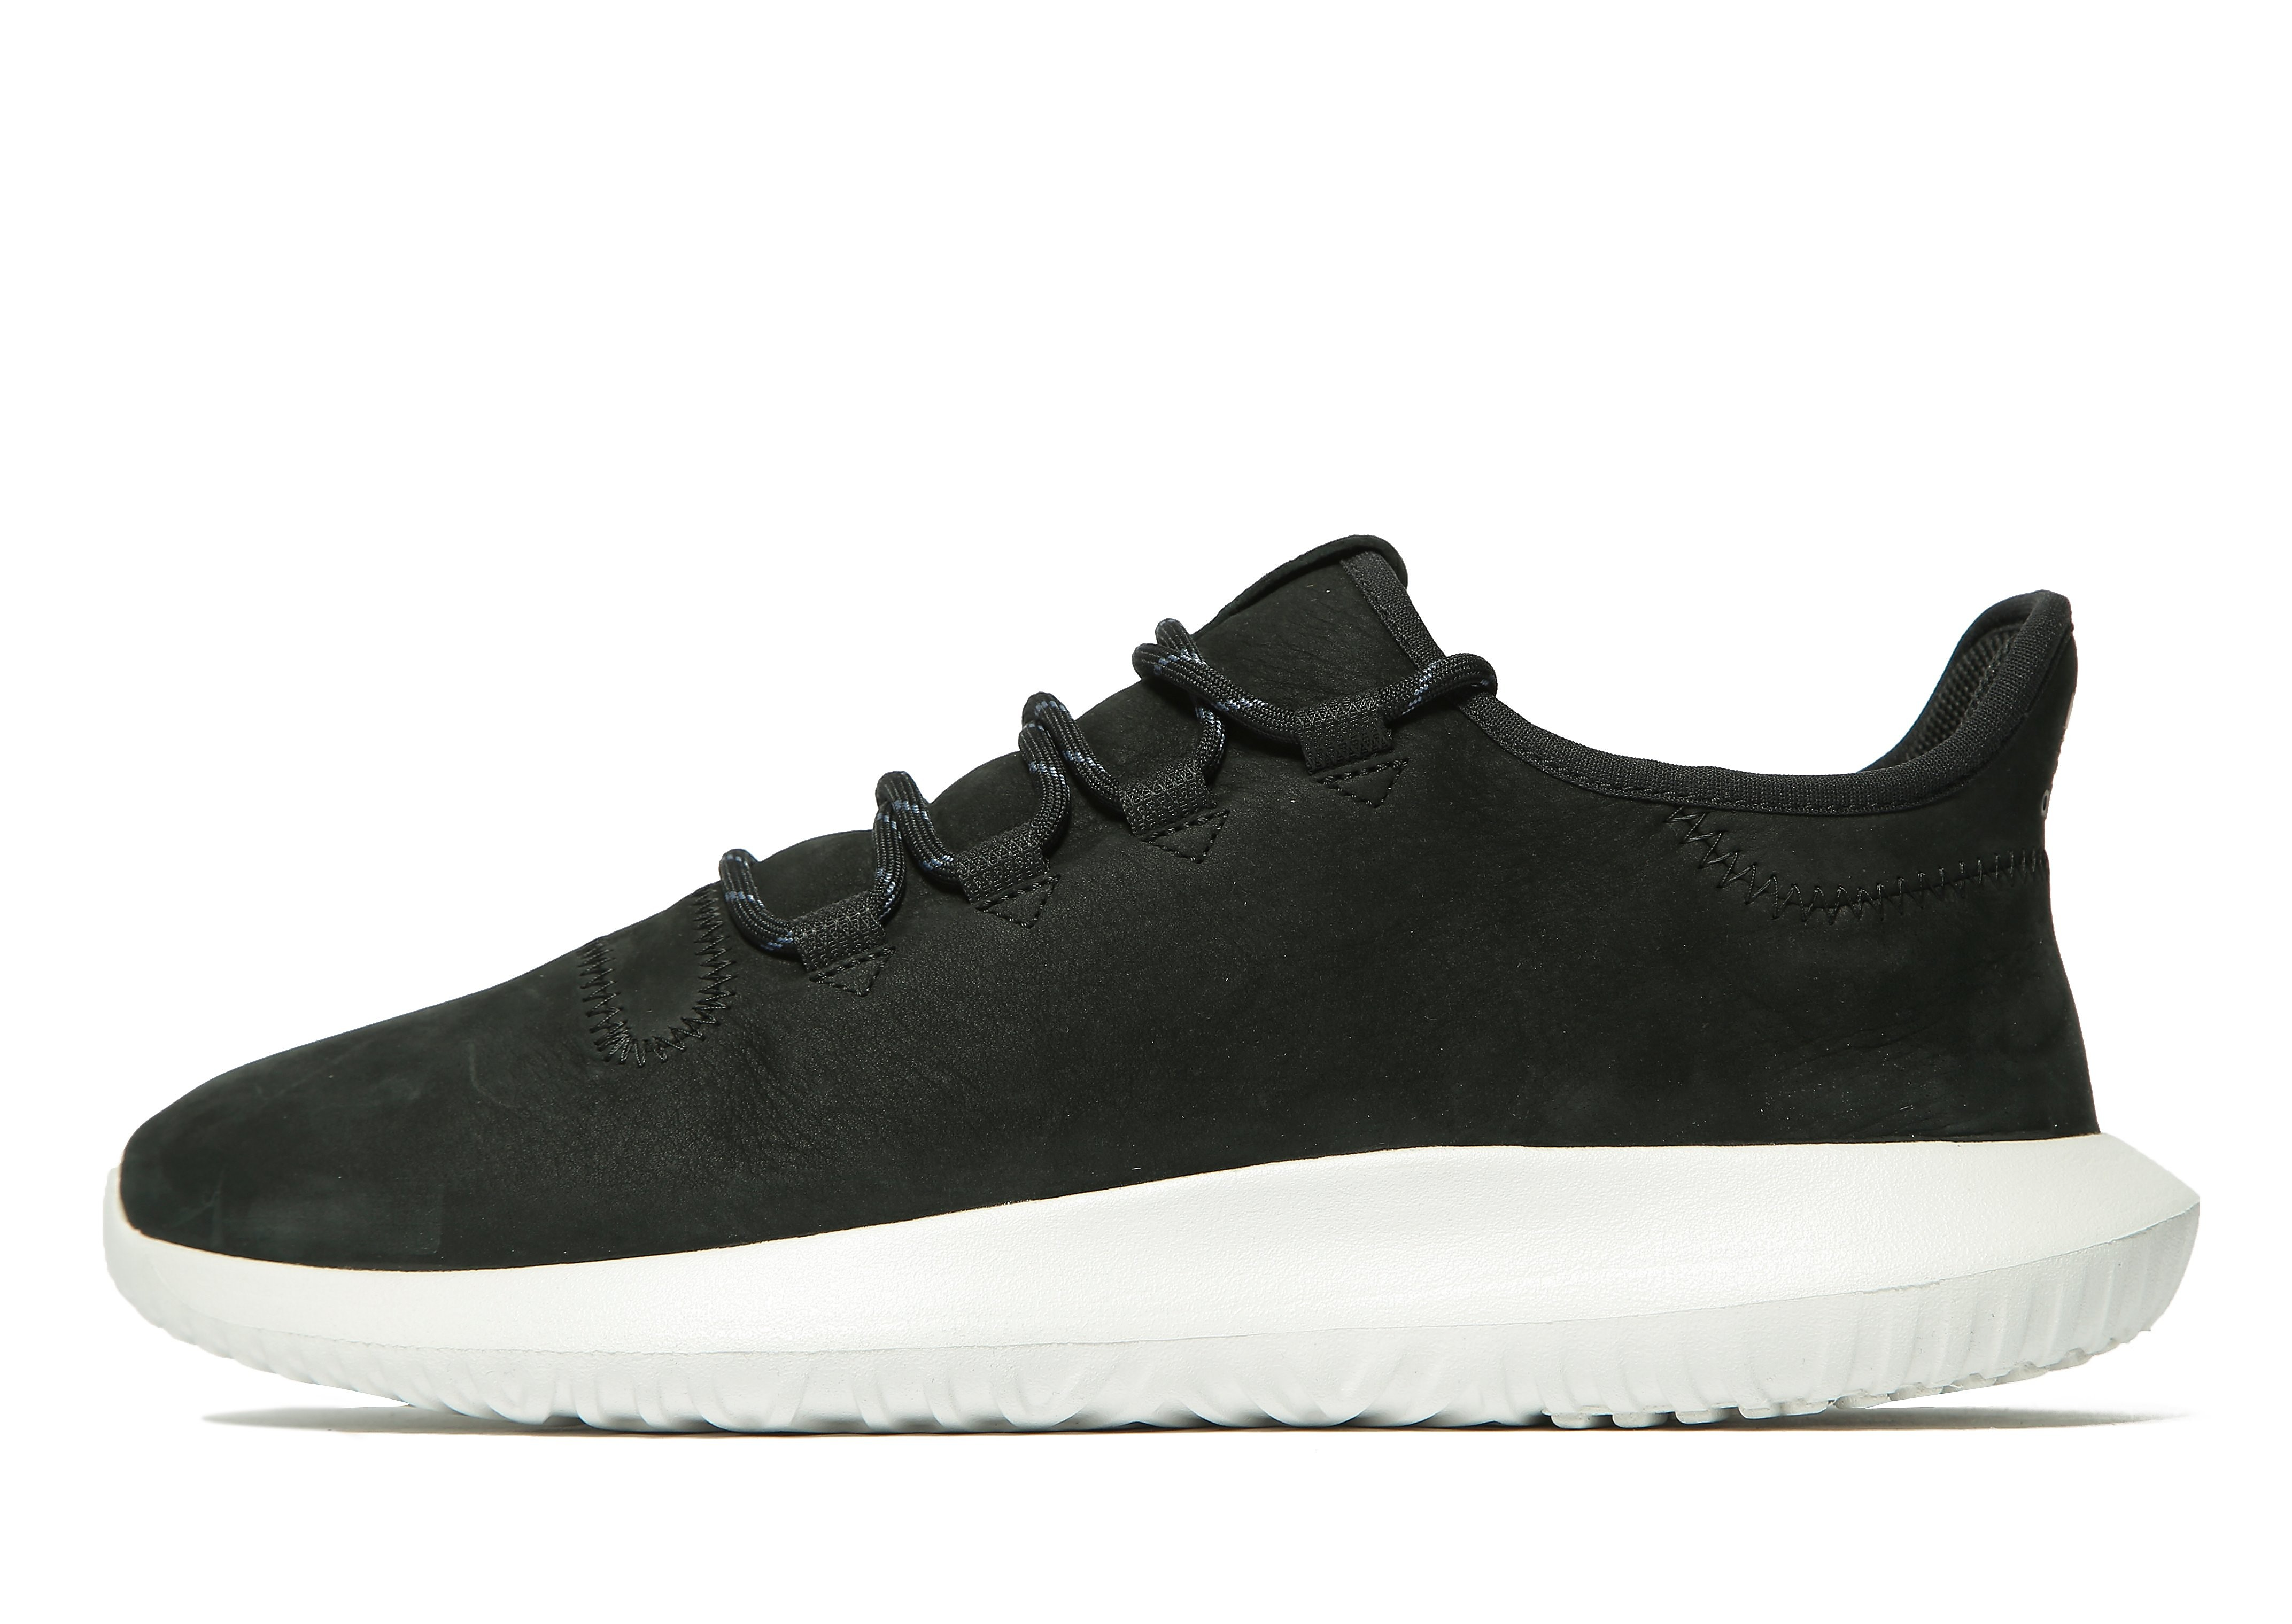 adidas Originals Tubular Shadow Leather